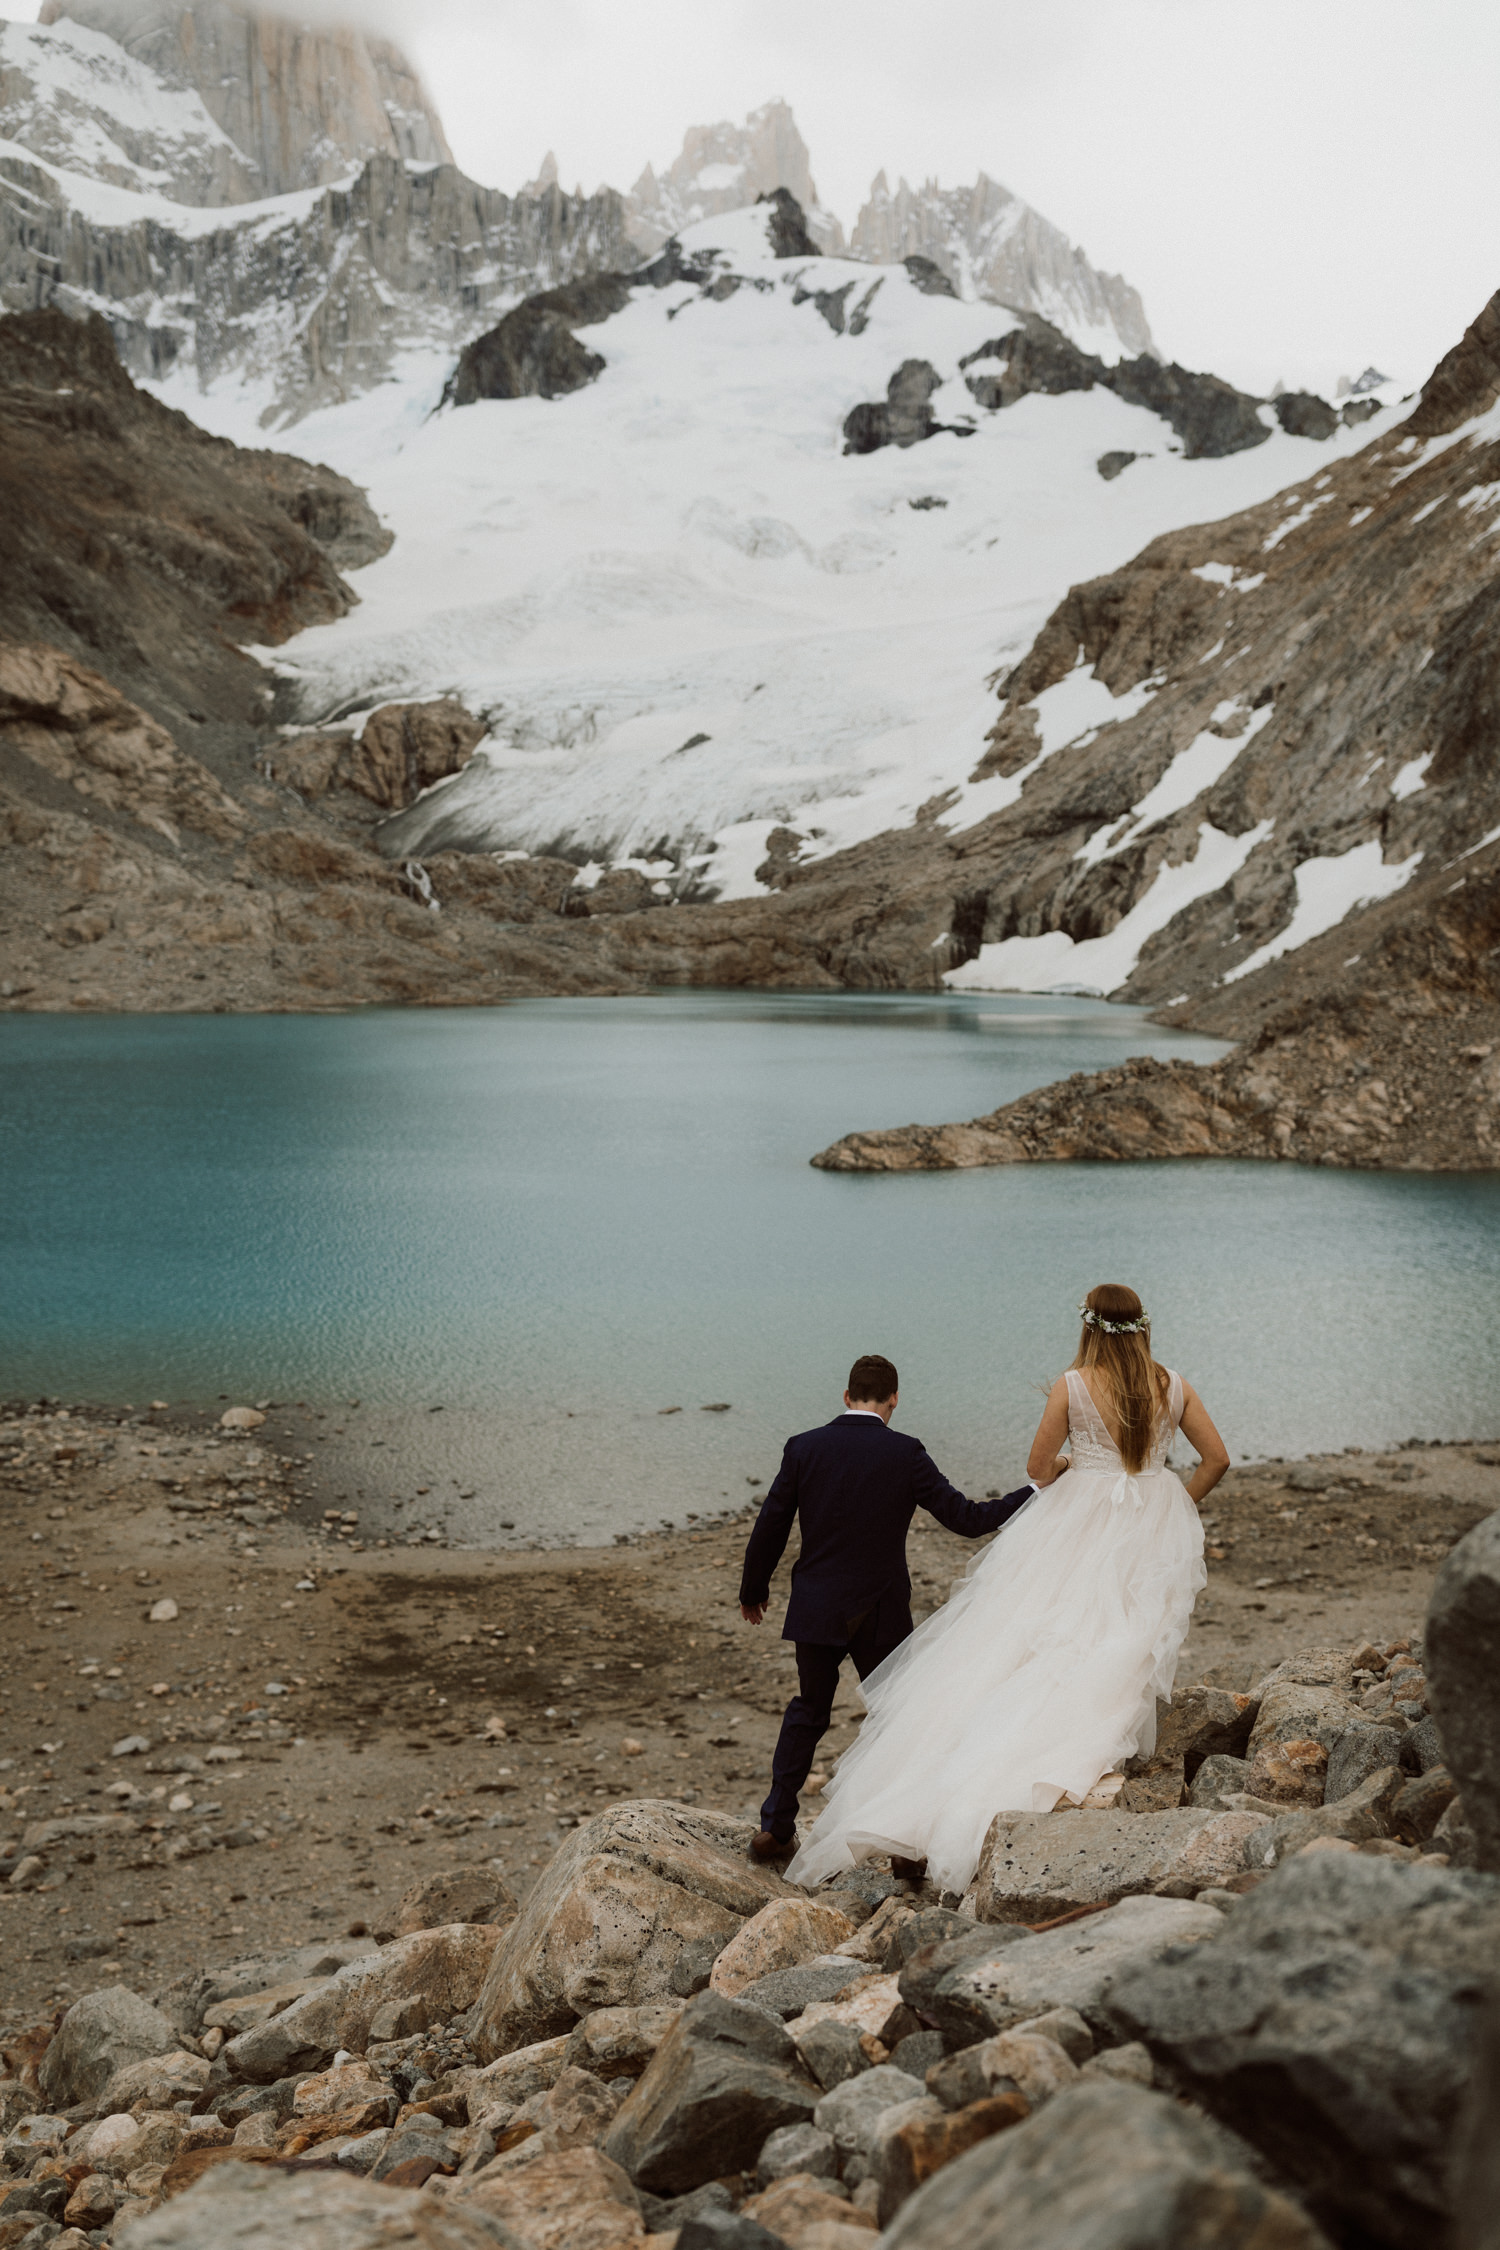 INTERNATIONAL ELOPEMENTS - an all inclusive package for locations all over the worldstarting at $8000+ all travel fees for Nate and Megan included+ access to our elopement and session planning guides+ flexible hours of photography, custom timeline according to your travel plans+ detailed location information, suggestions, and scouting, vendor recommendations+ travel planning assistance (airbnbs, hotels)+ online gallery with high resolution images+ access to professional print shop+ assistance with permits+ personal printing rights